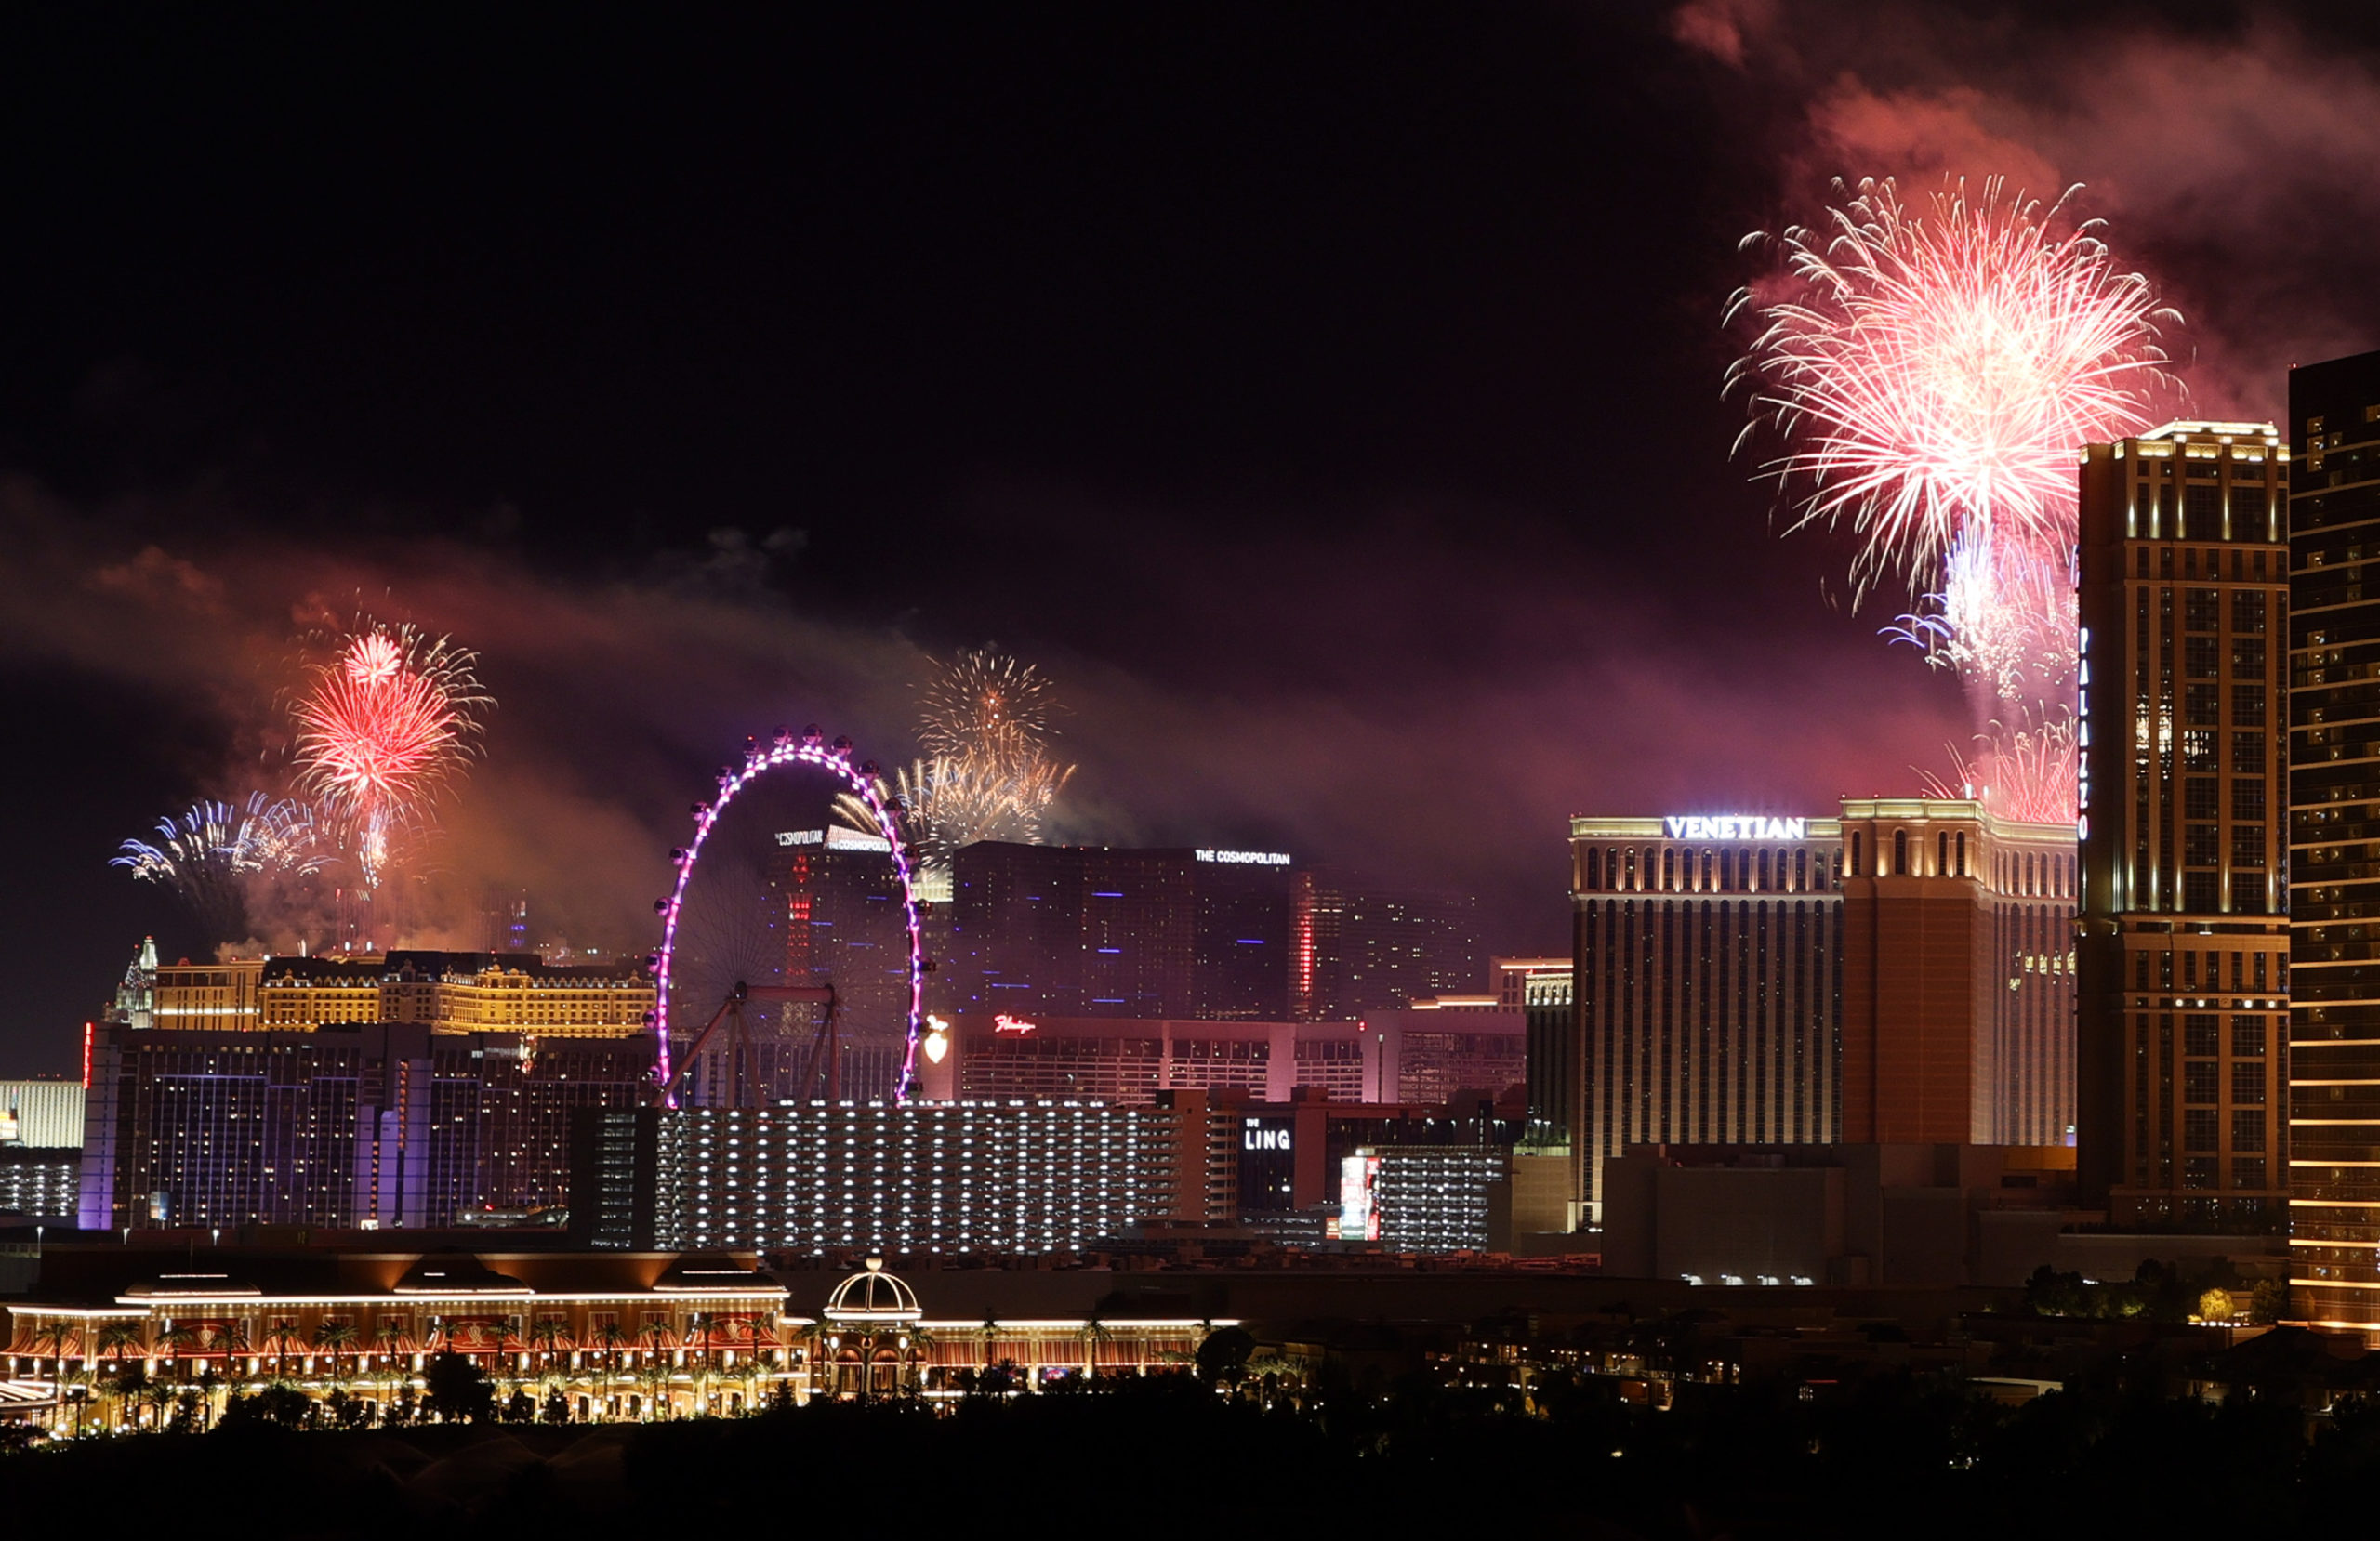 """Fireworks by Grucci light up the sky above resorts on the Las Vegas Strip in a Fourth of July celebration on July 4, 2021 in Las Vegas, Nevada. The Las Vegas Convention and Visitors Authority presented a themed, coordinated fireworks show from eight hotel-casinos on Independence Day for the first time to show that the """"Entertainment Capital of the World"""" is fully reopened. Last month, Clark County dropped all COVID-19 pandemic mandates, which removed all capacity and social distancing restrictions. (Photo by Ethan Miller/Getty Images)"""